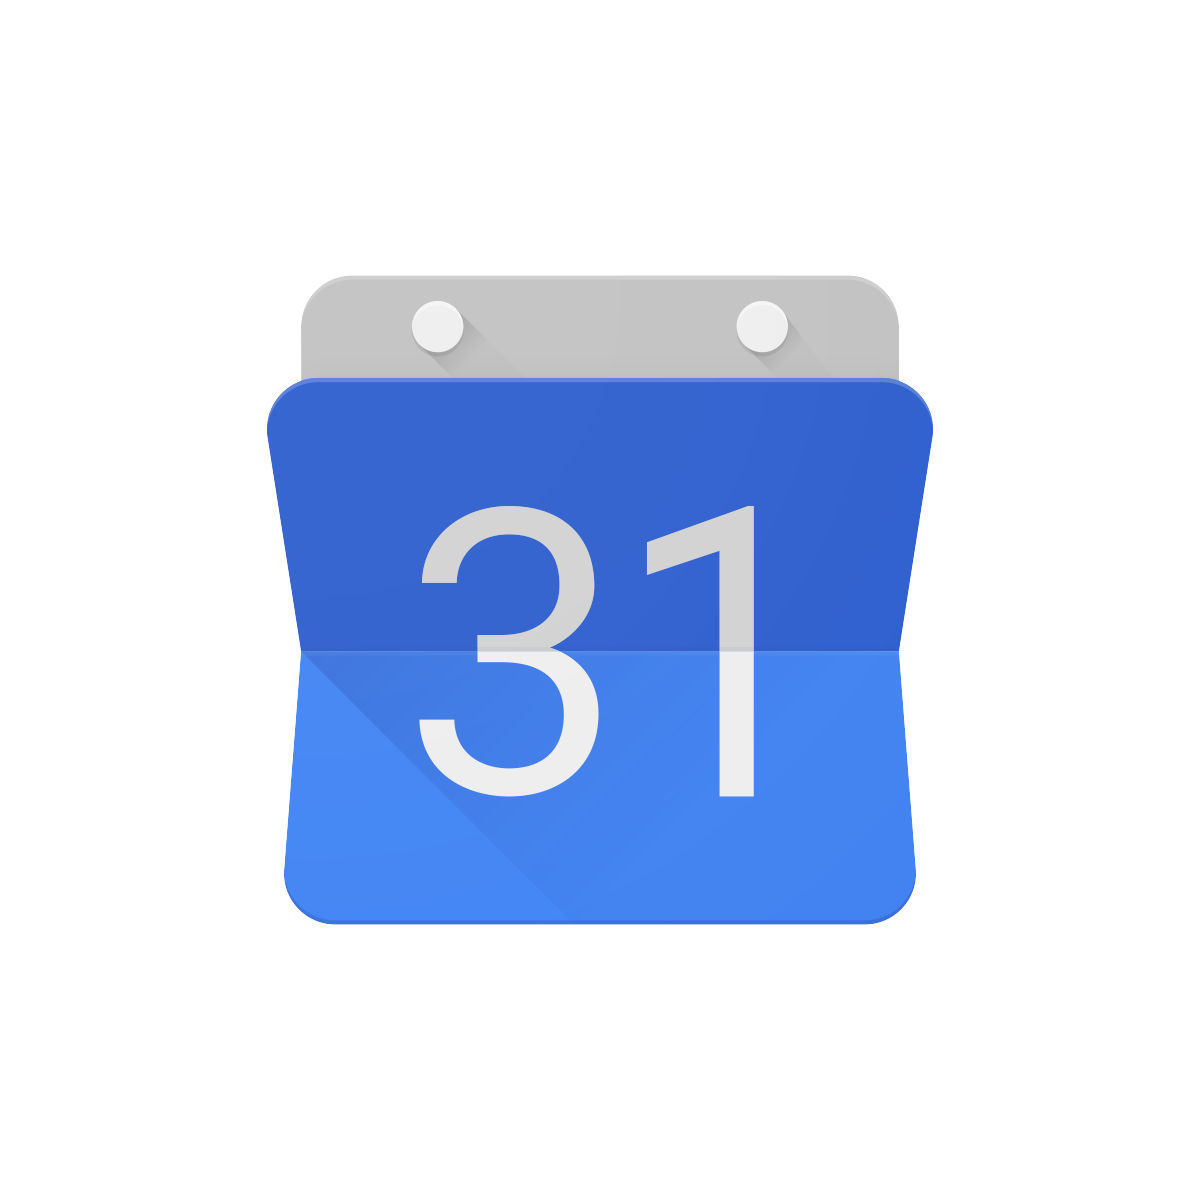 Google calendar icon png. The best app for